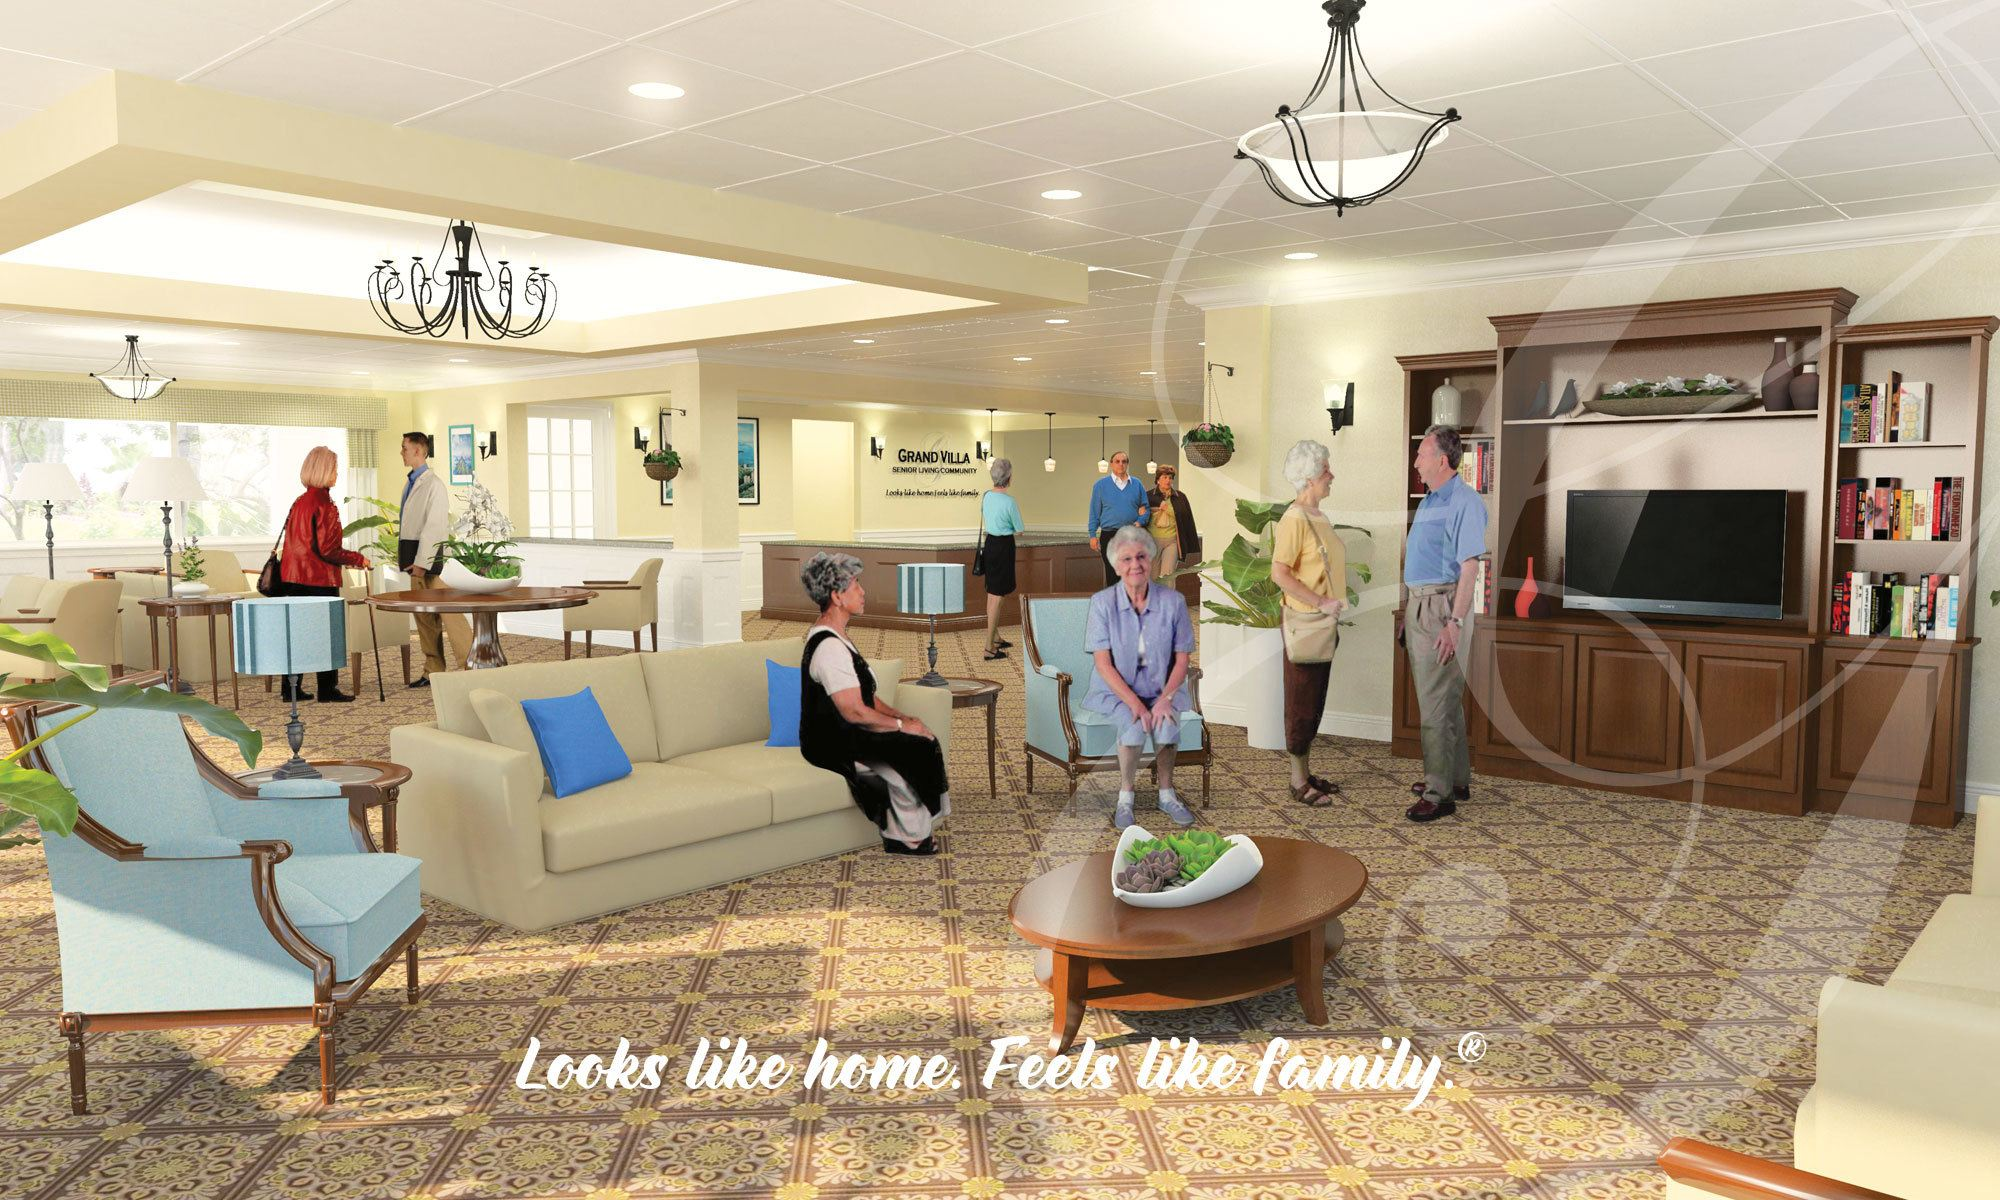 deerfield beach senior singles Century village at deerfield beach in deerfield beach, fl is a 55+ community located in the broward county see homes for sale, photos and floor plans.